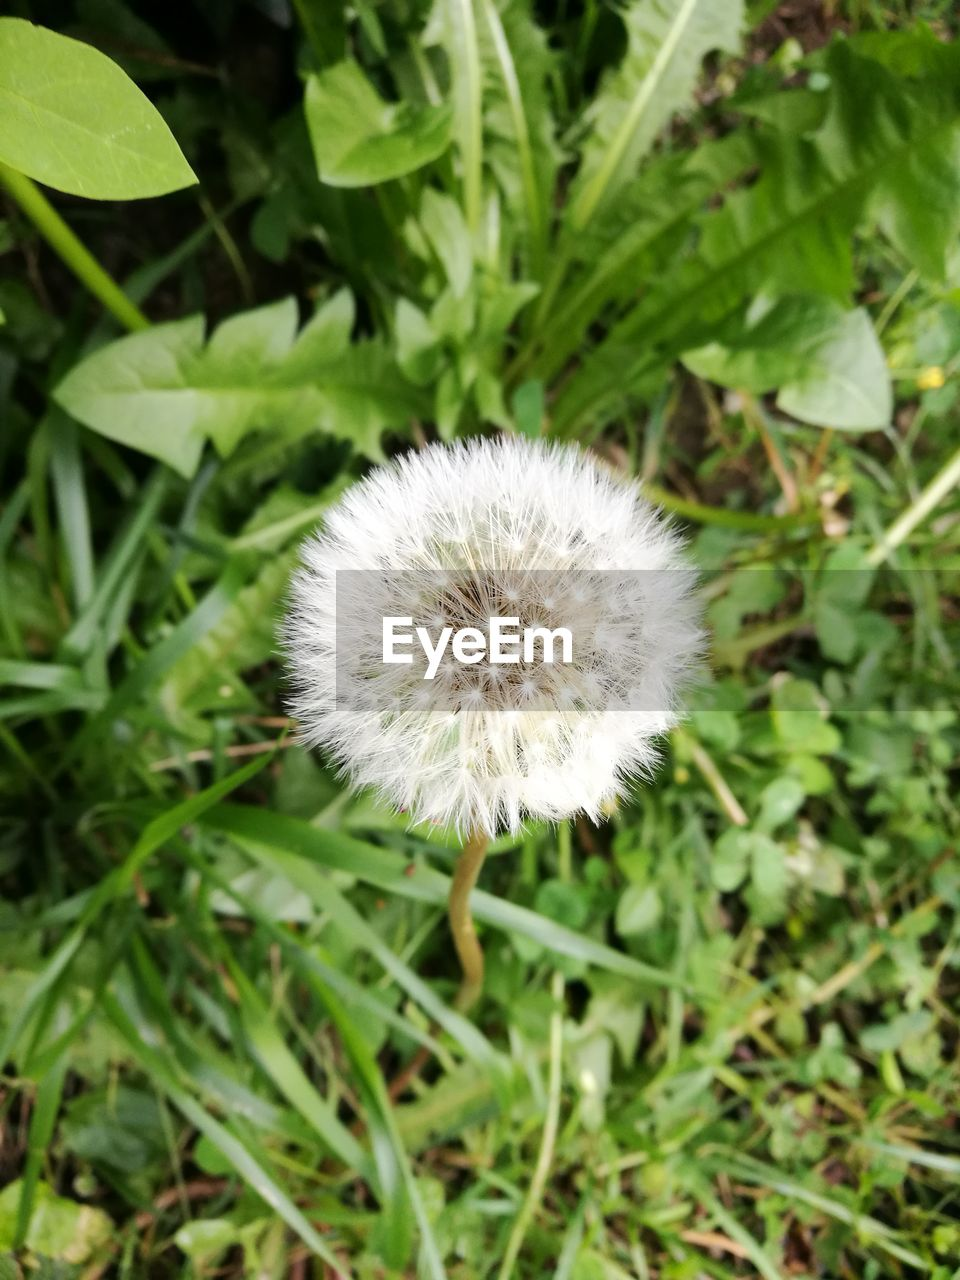 flower, fragility, growth, dandelion, nature, plant, beauty in nature, white color, freshness, flower head, focus on foreground, close-up, green color, uncultivated, outdoors, day, no people, grass